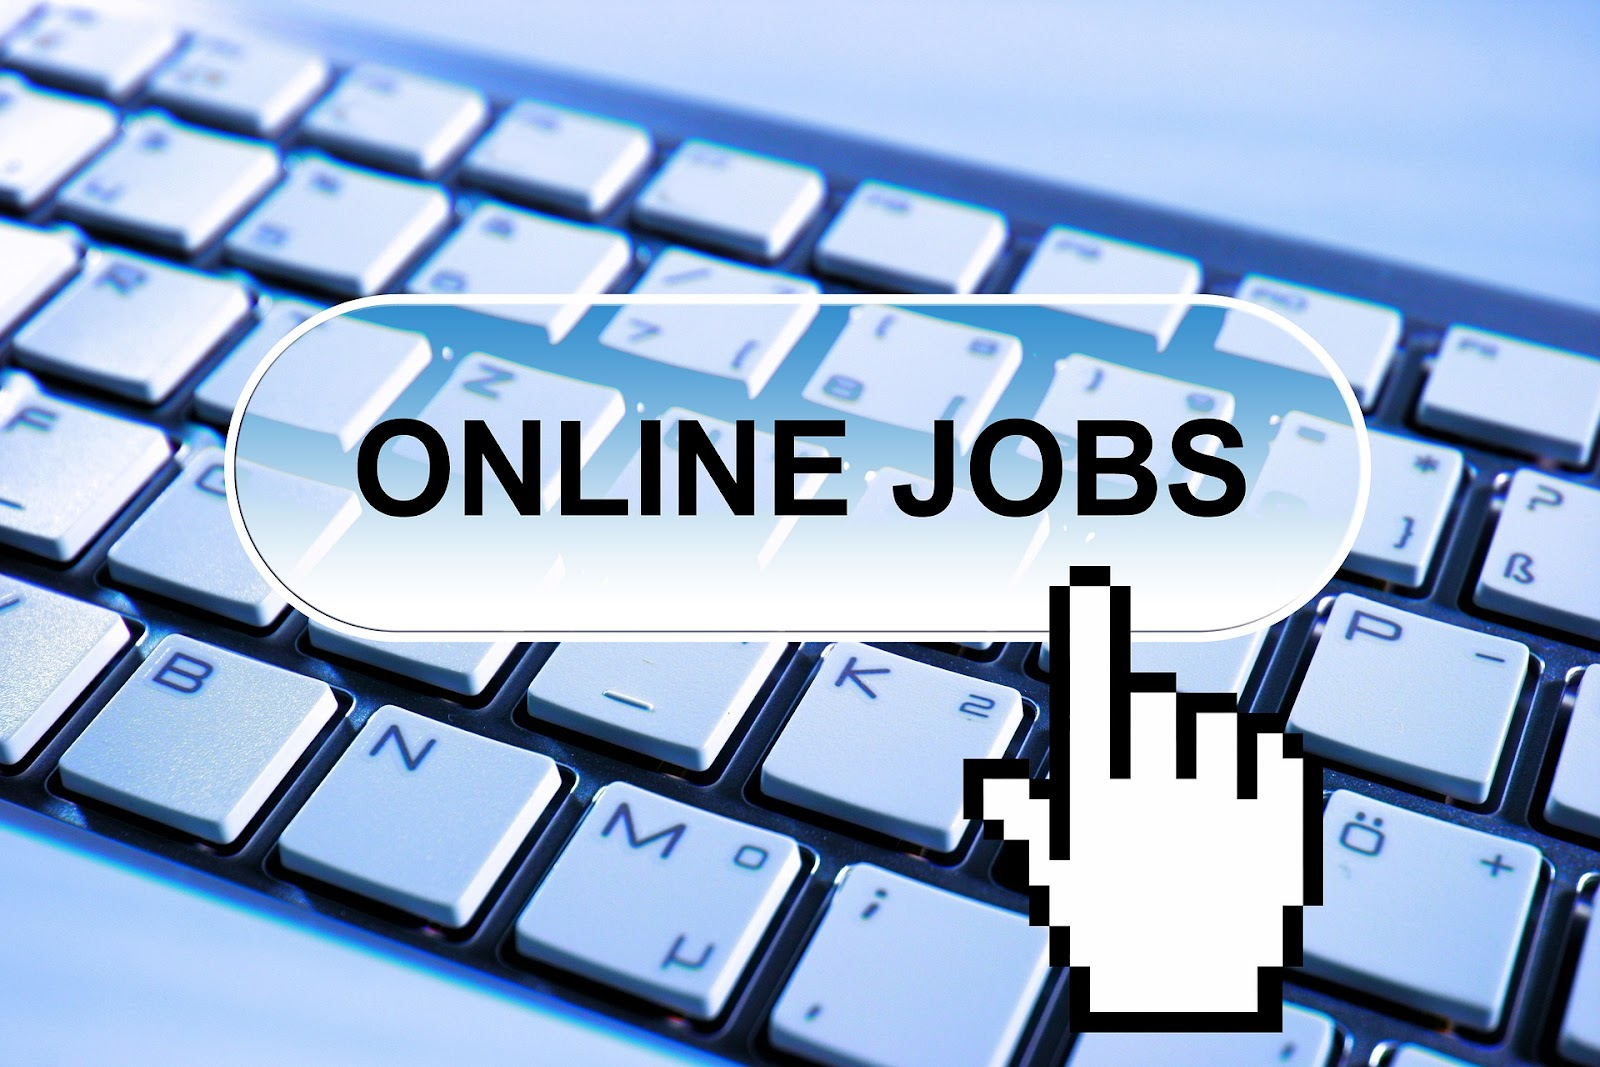 Top 15 Online Jobs For College Students (Your Complete 2018 Guide)